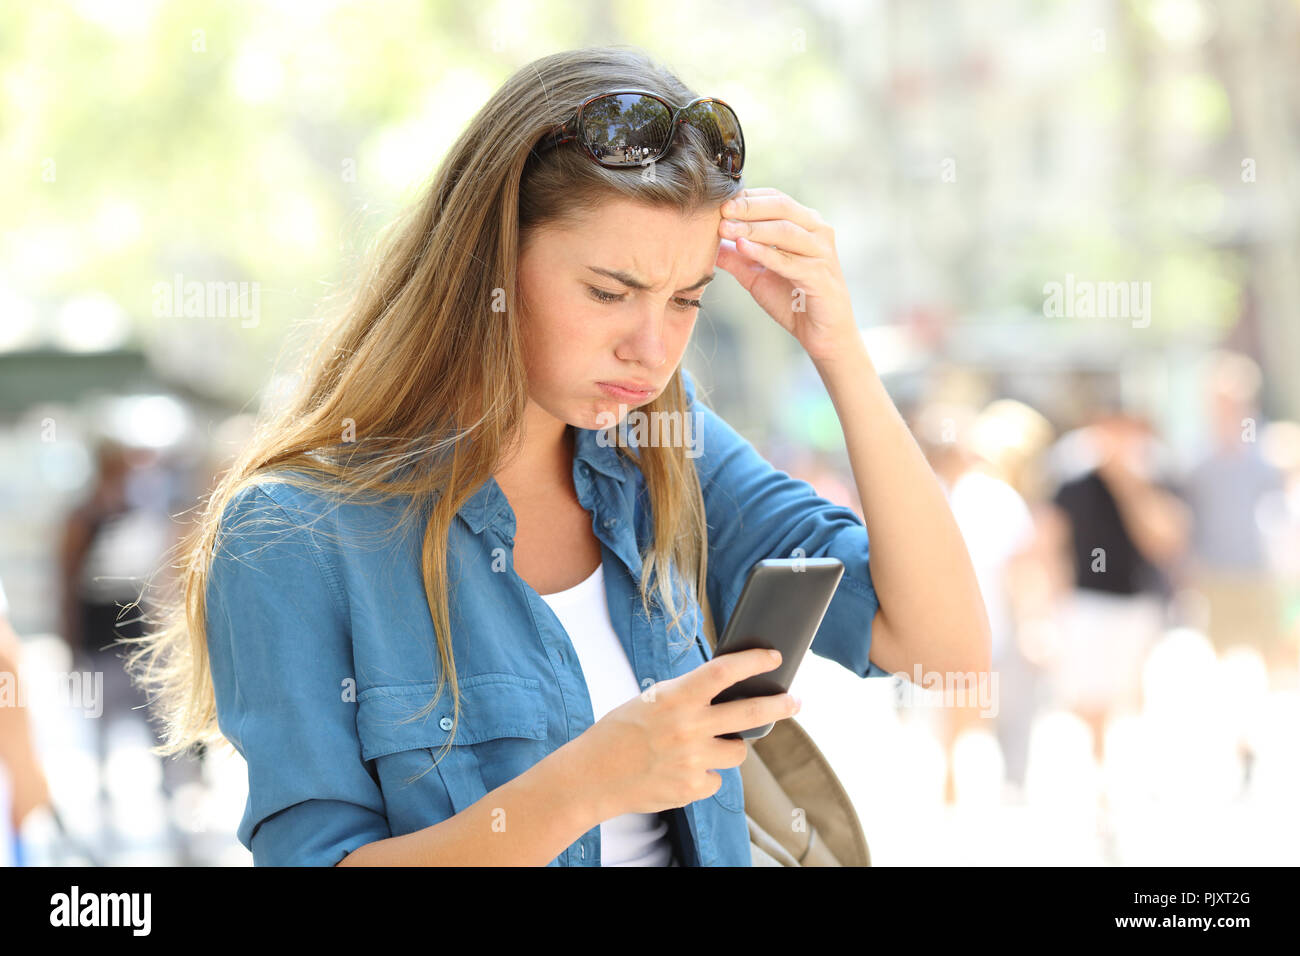 6ad08ff5a79 Frustrated woman reading online smart phone content in the street - Stock  Image